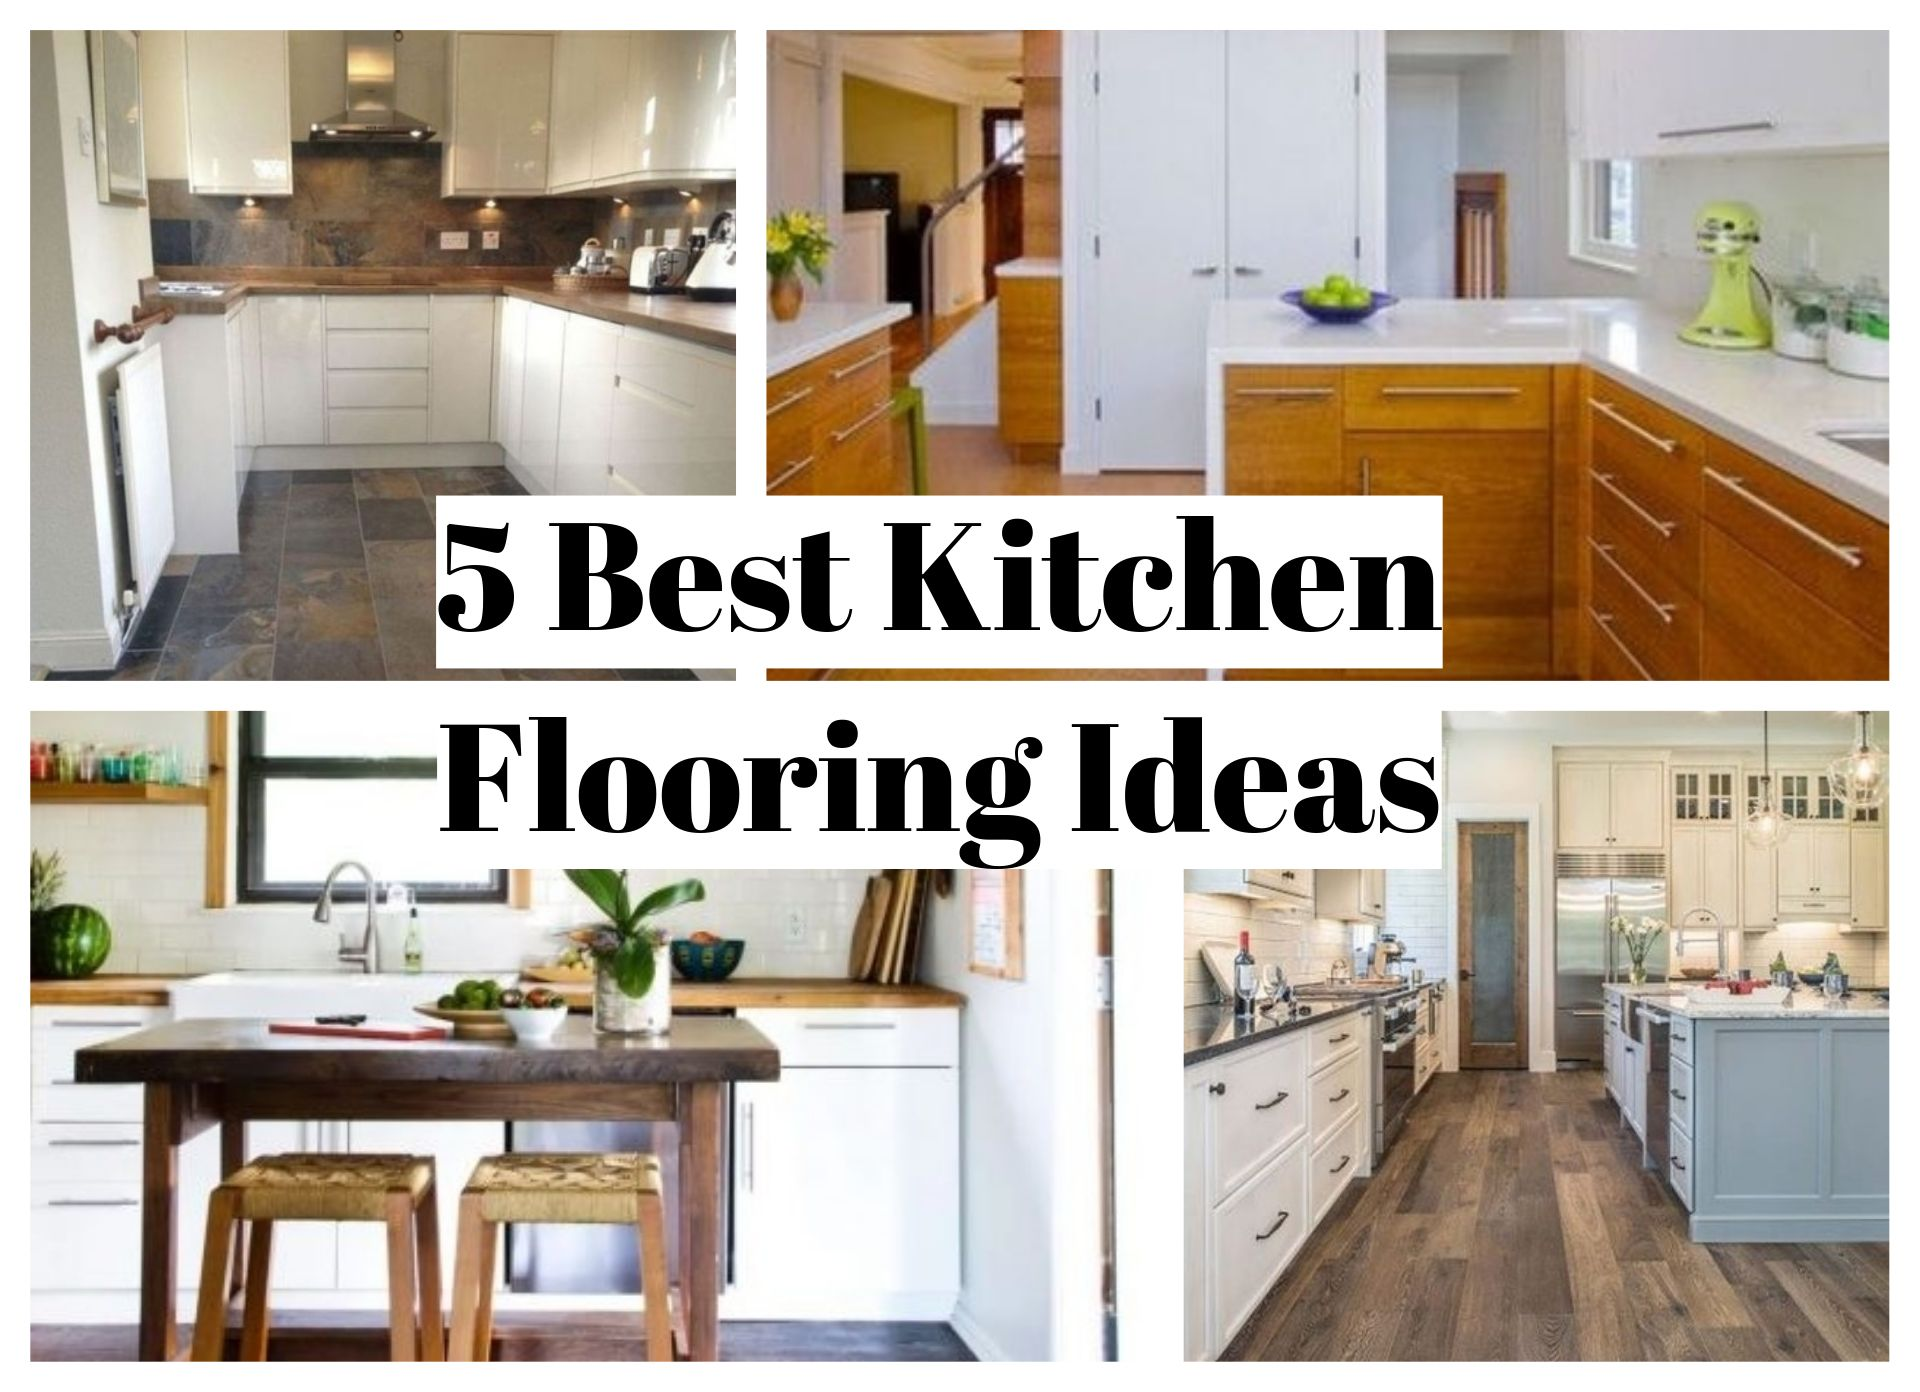 5 Best Kitchen Flooring Ideas In 2020 Kitchen Flooring Best Flooring For Kitchen Kitchen Flooring Options